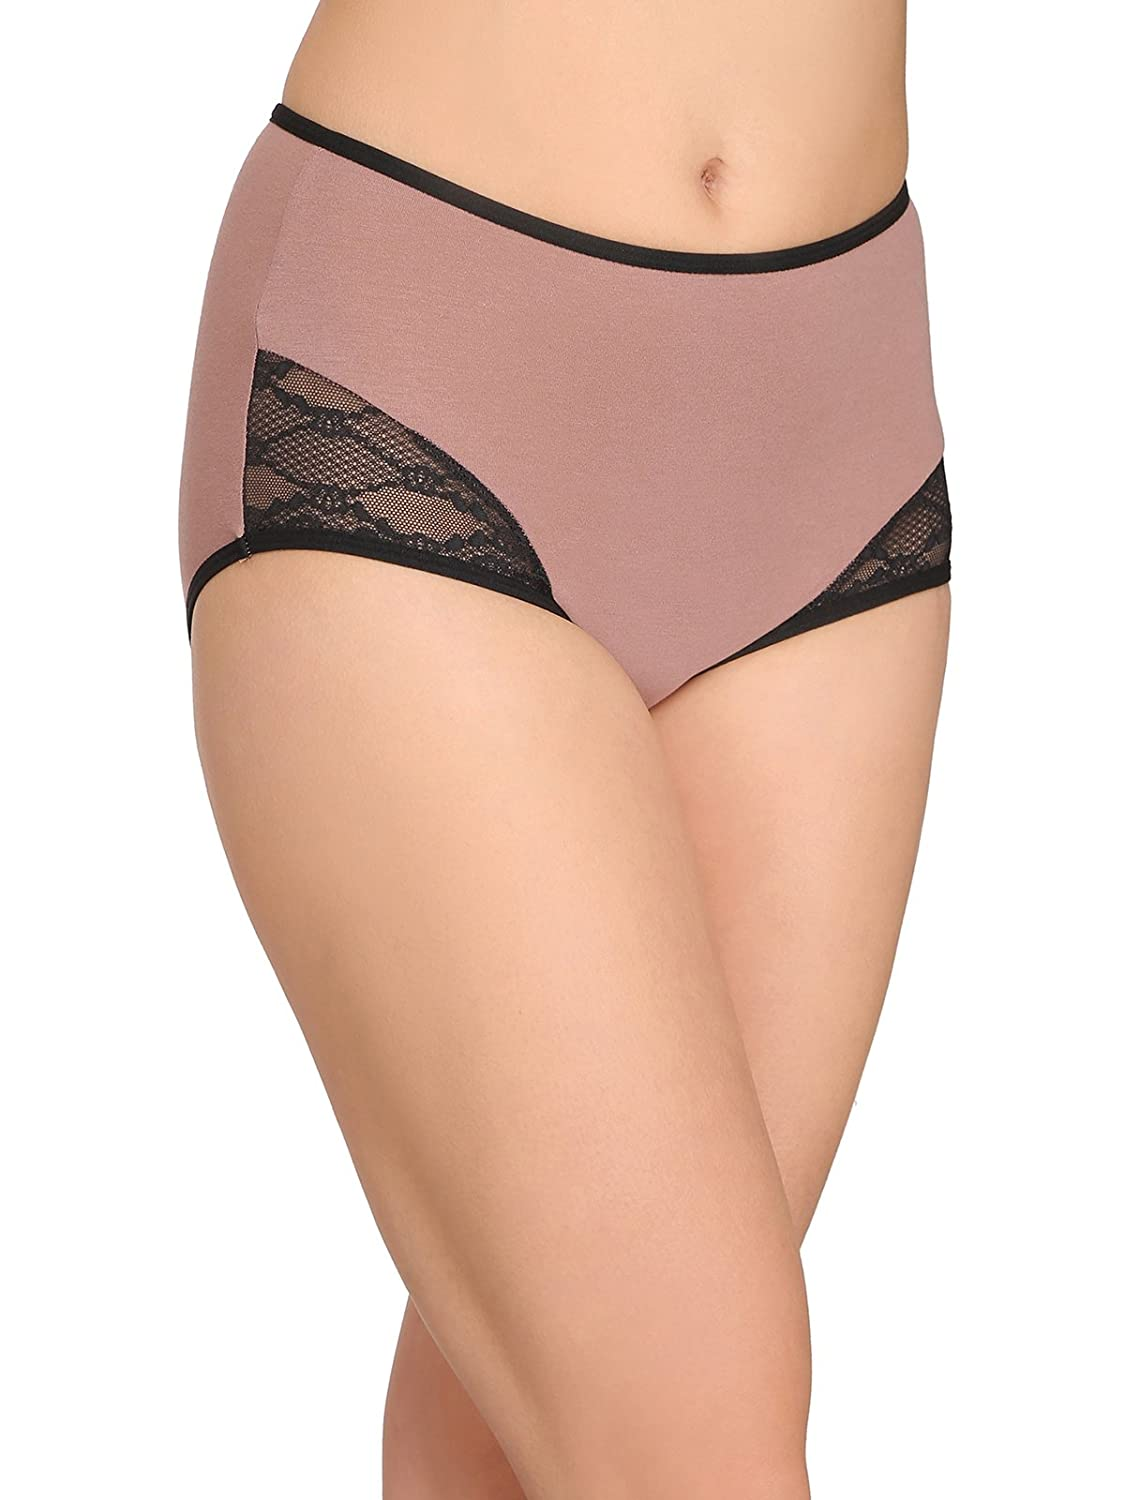 225c4277e29 Clovia Women s Cotton High Waist Hipster Panty with Lace Sides  Amazon.in   Clothing   Accessories